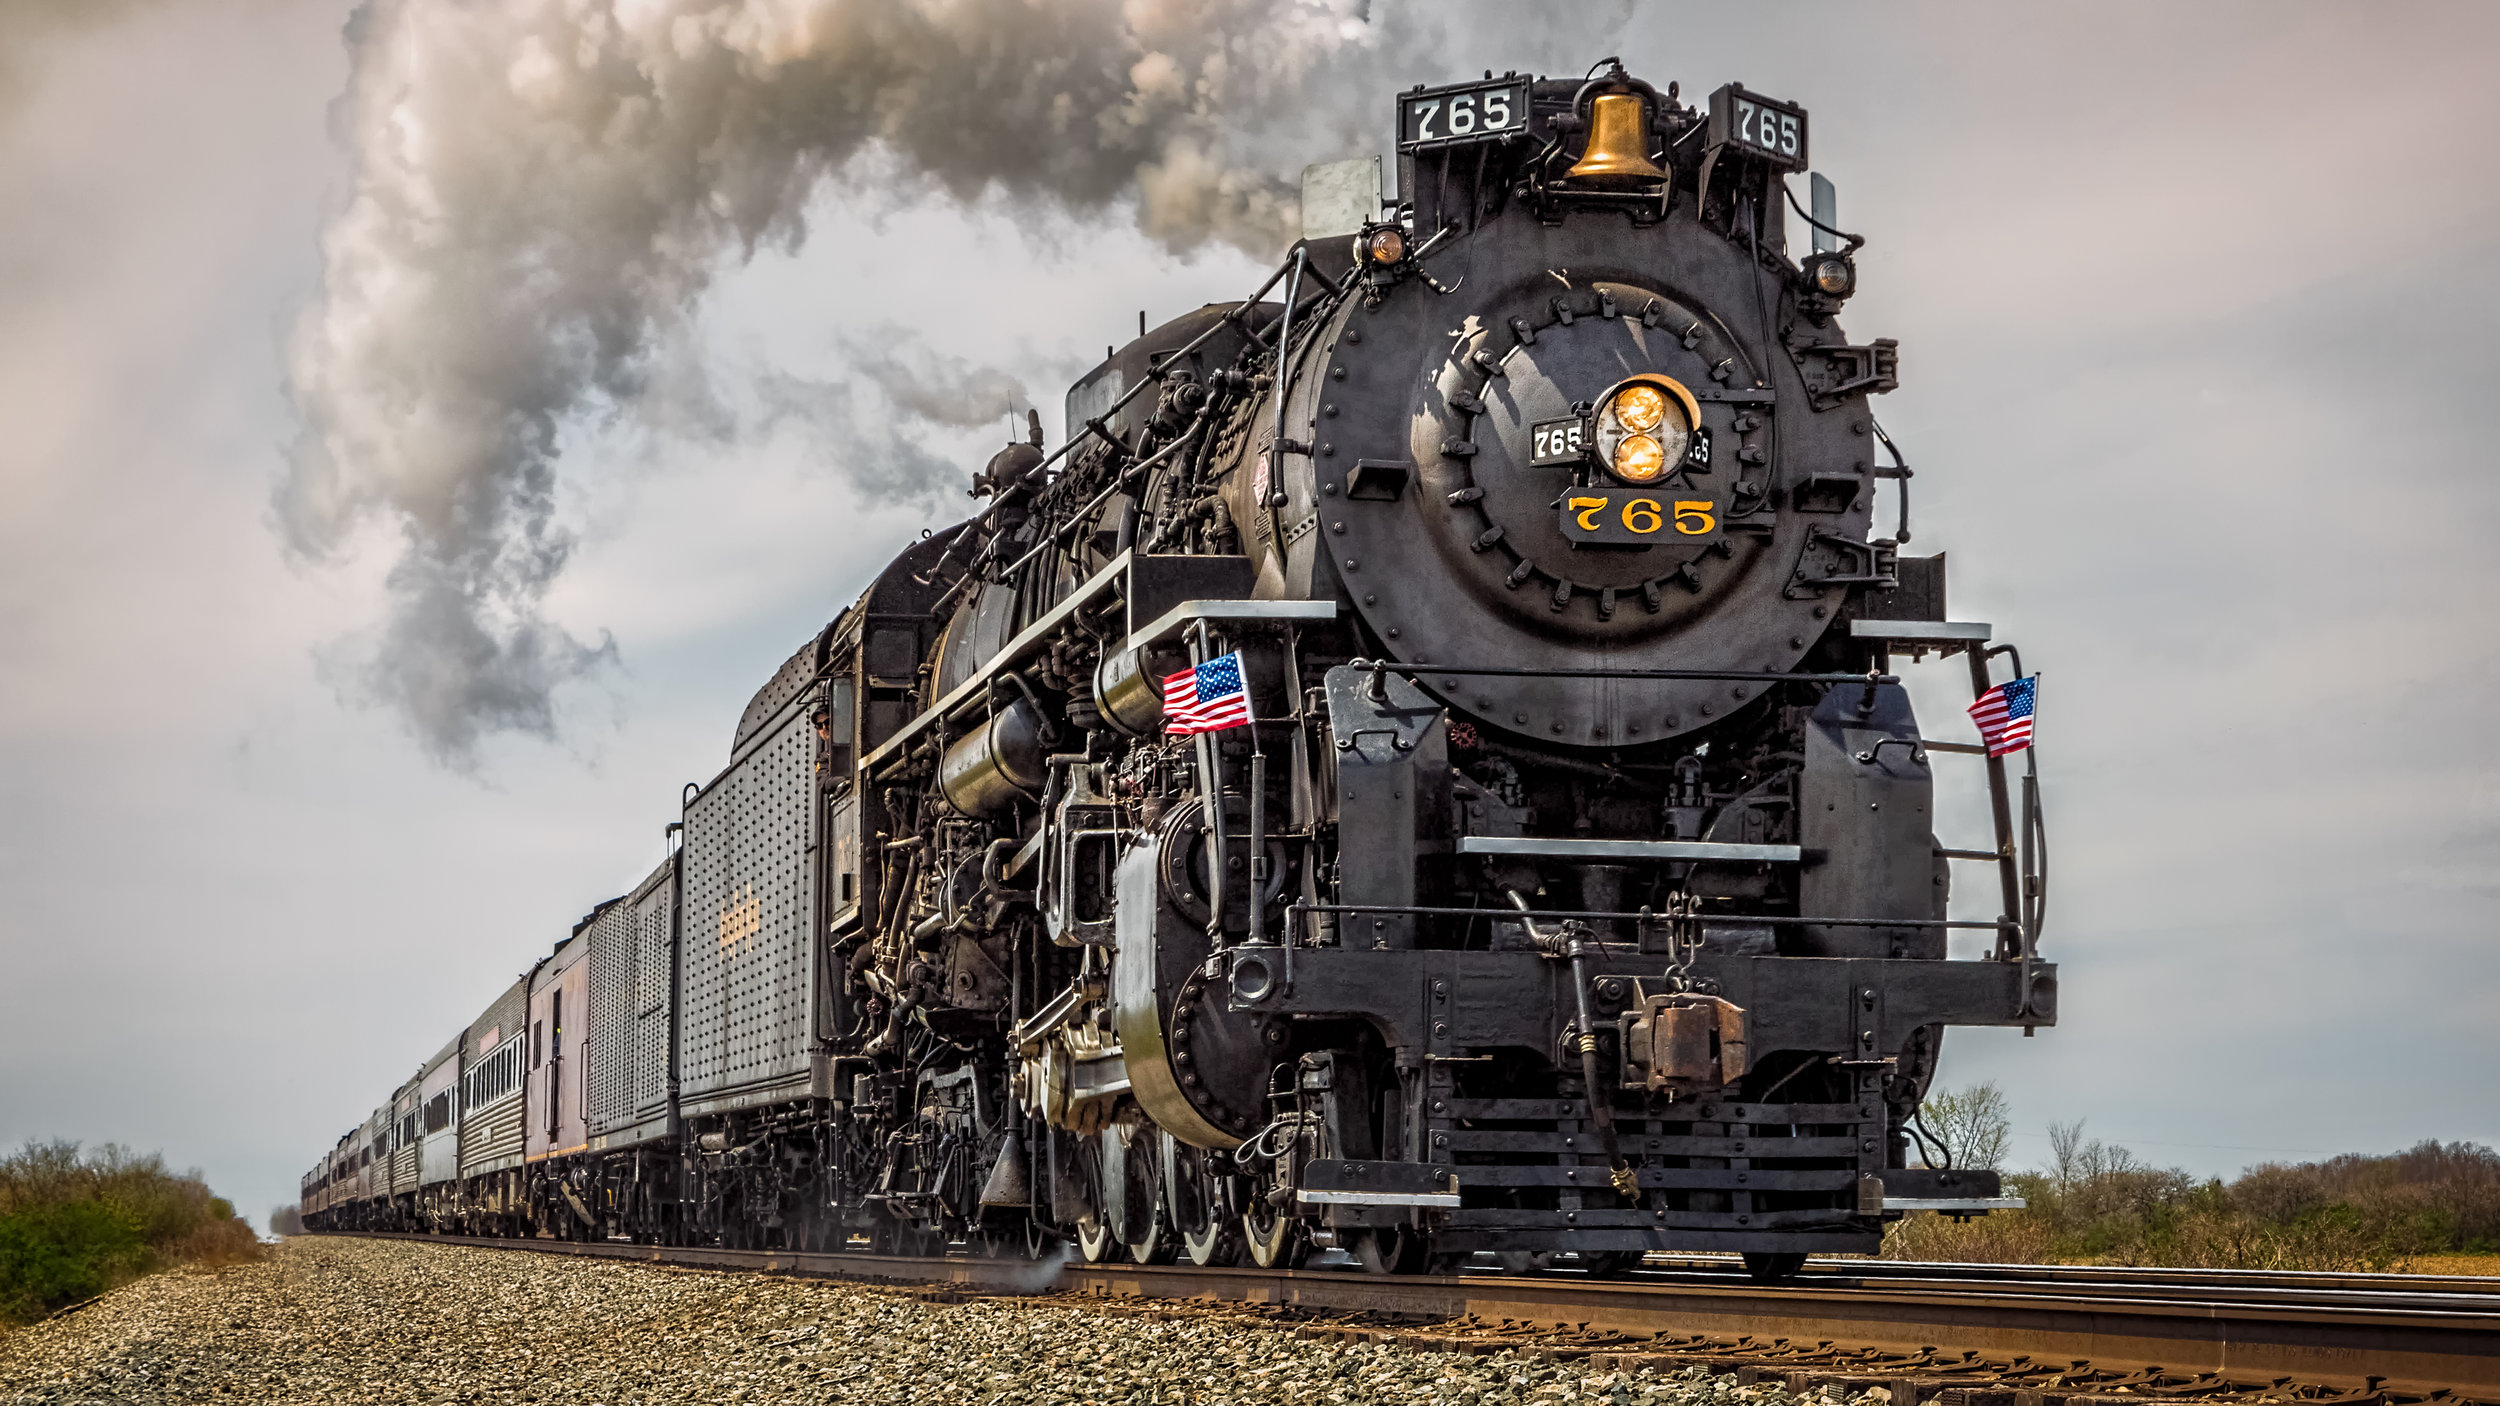 The 765 out of Fortwayne, Indiana. One of my first pictures from my Canon Mark III